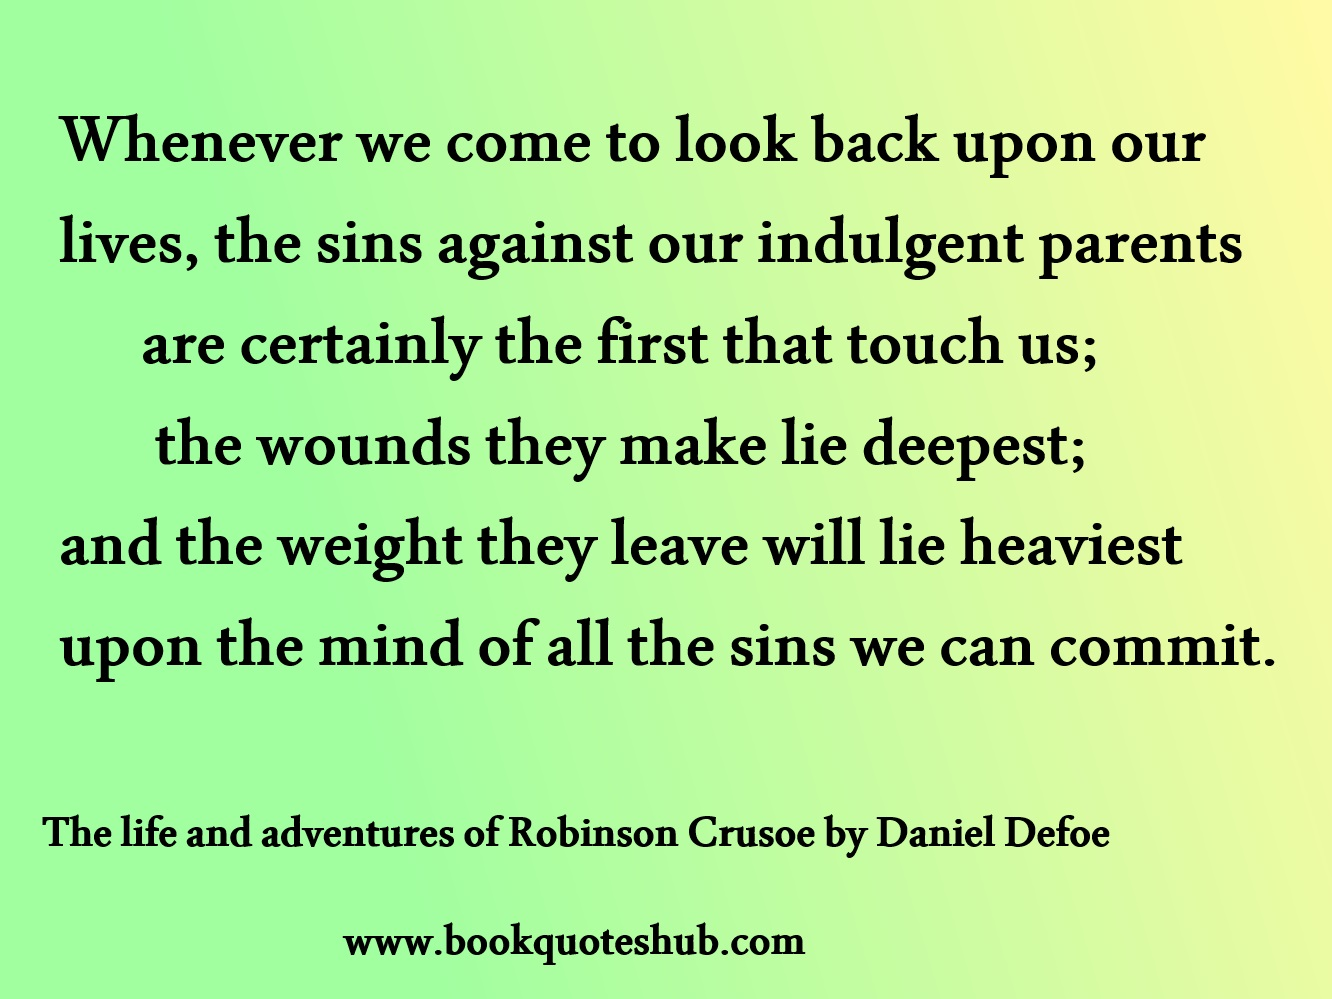 Sins We Commit Against Our Indulgent Parents Book Quotes Hub